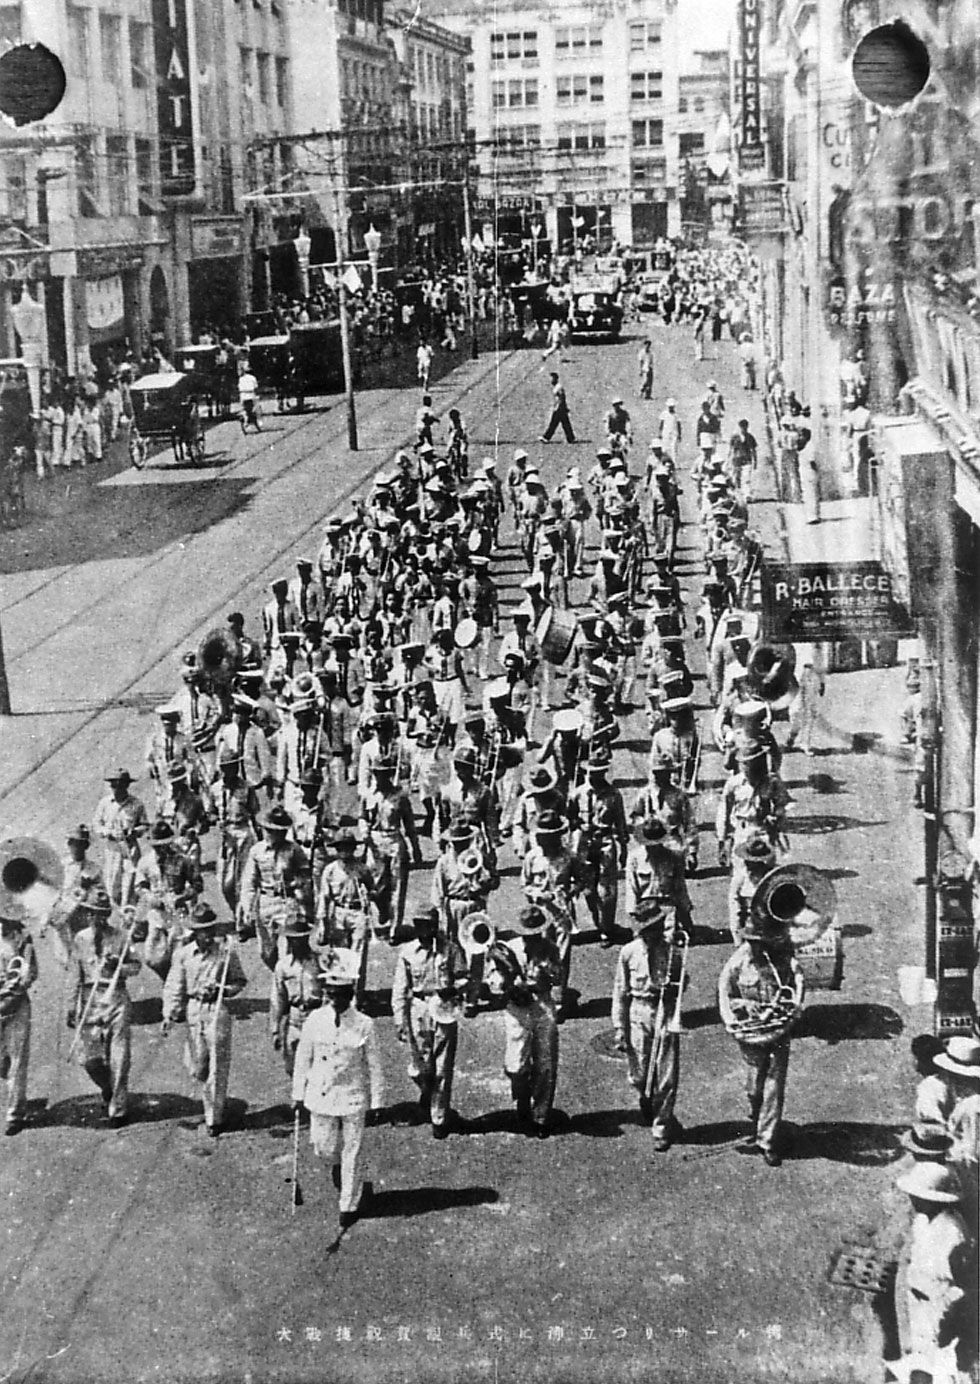 Filipino Troops March Rizal Ave. during the Japanese Occupation